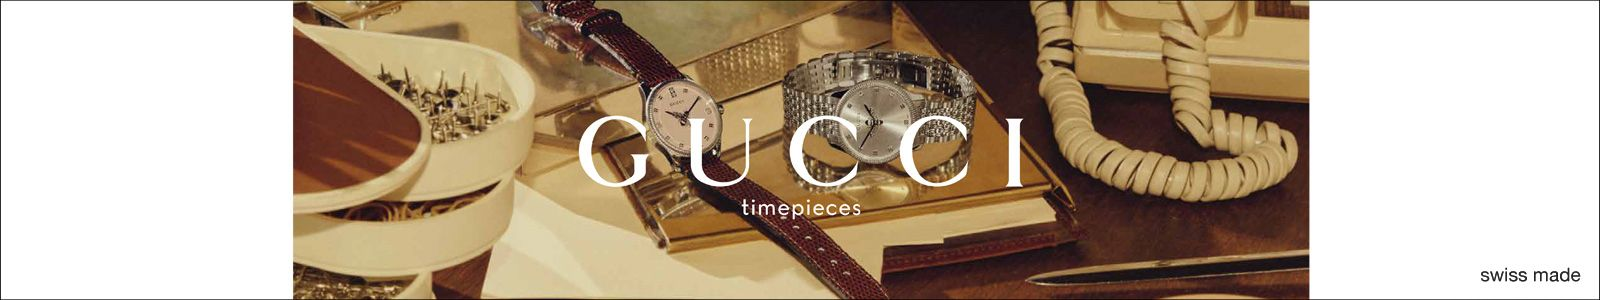 Gucci, timepieces